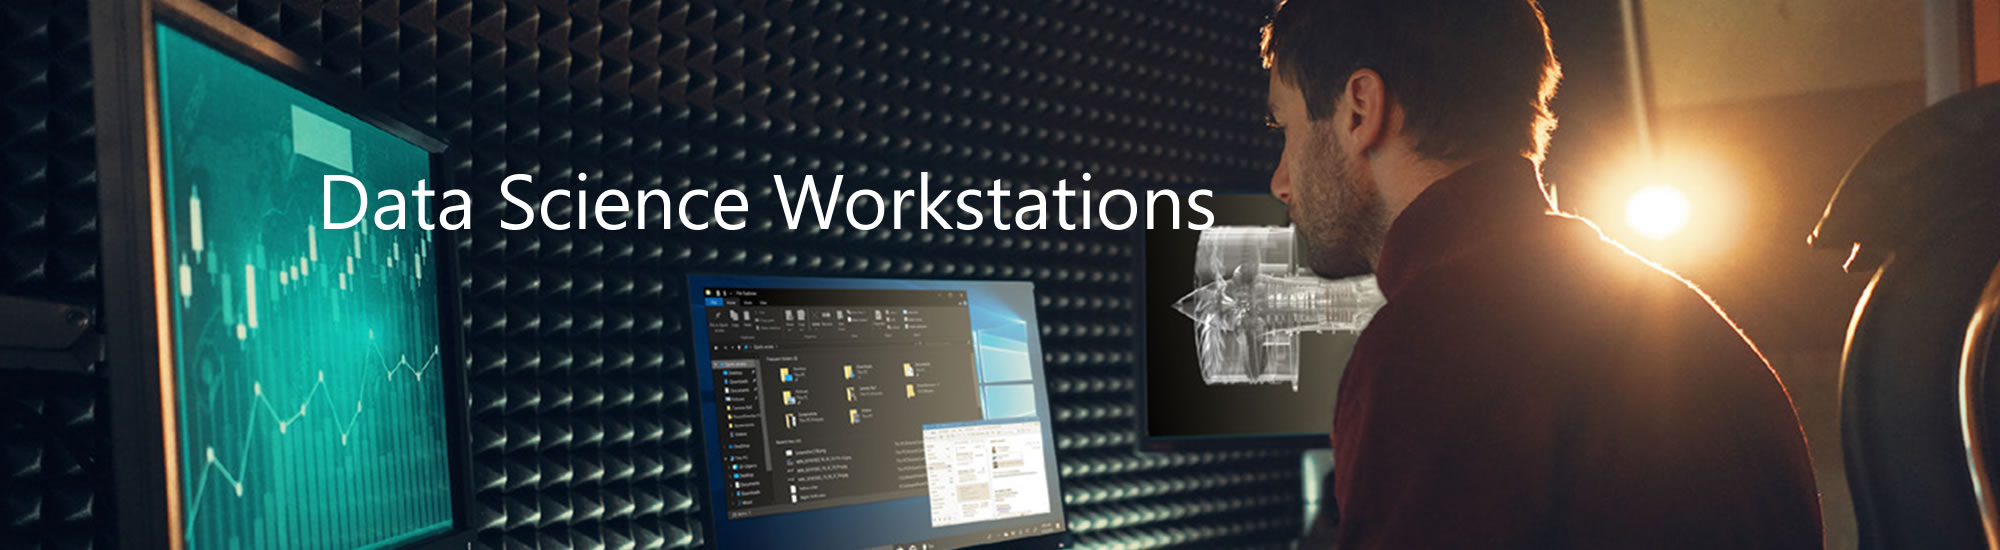 Data Science Workstations